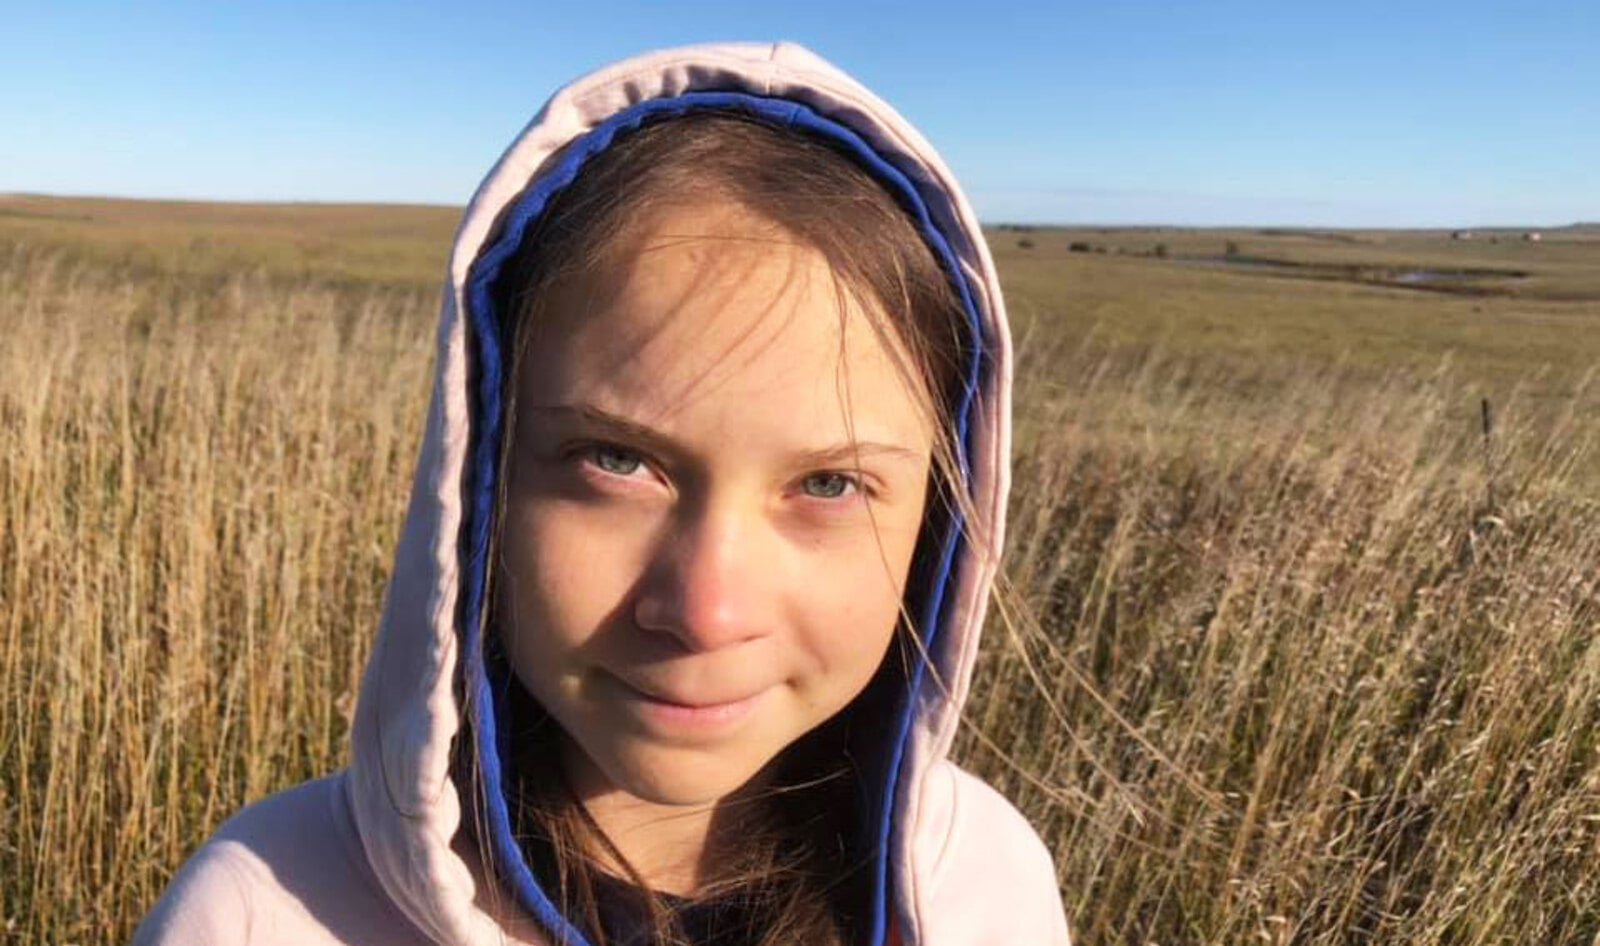 Greta Thunberg Declines $54,000 Environmental Award, Demands Governments Take Climate Action Instead